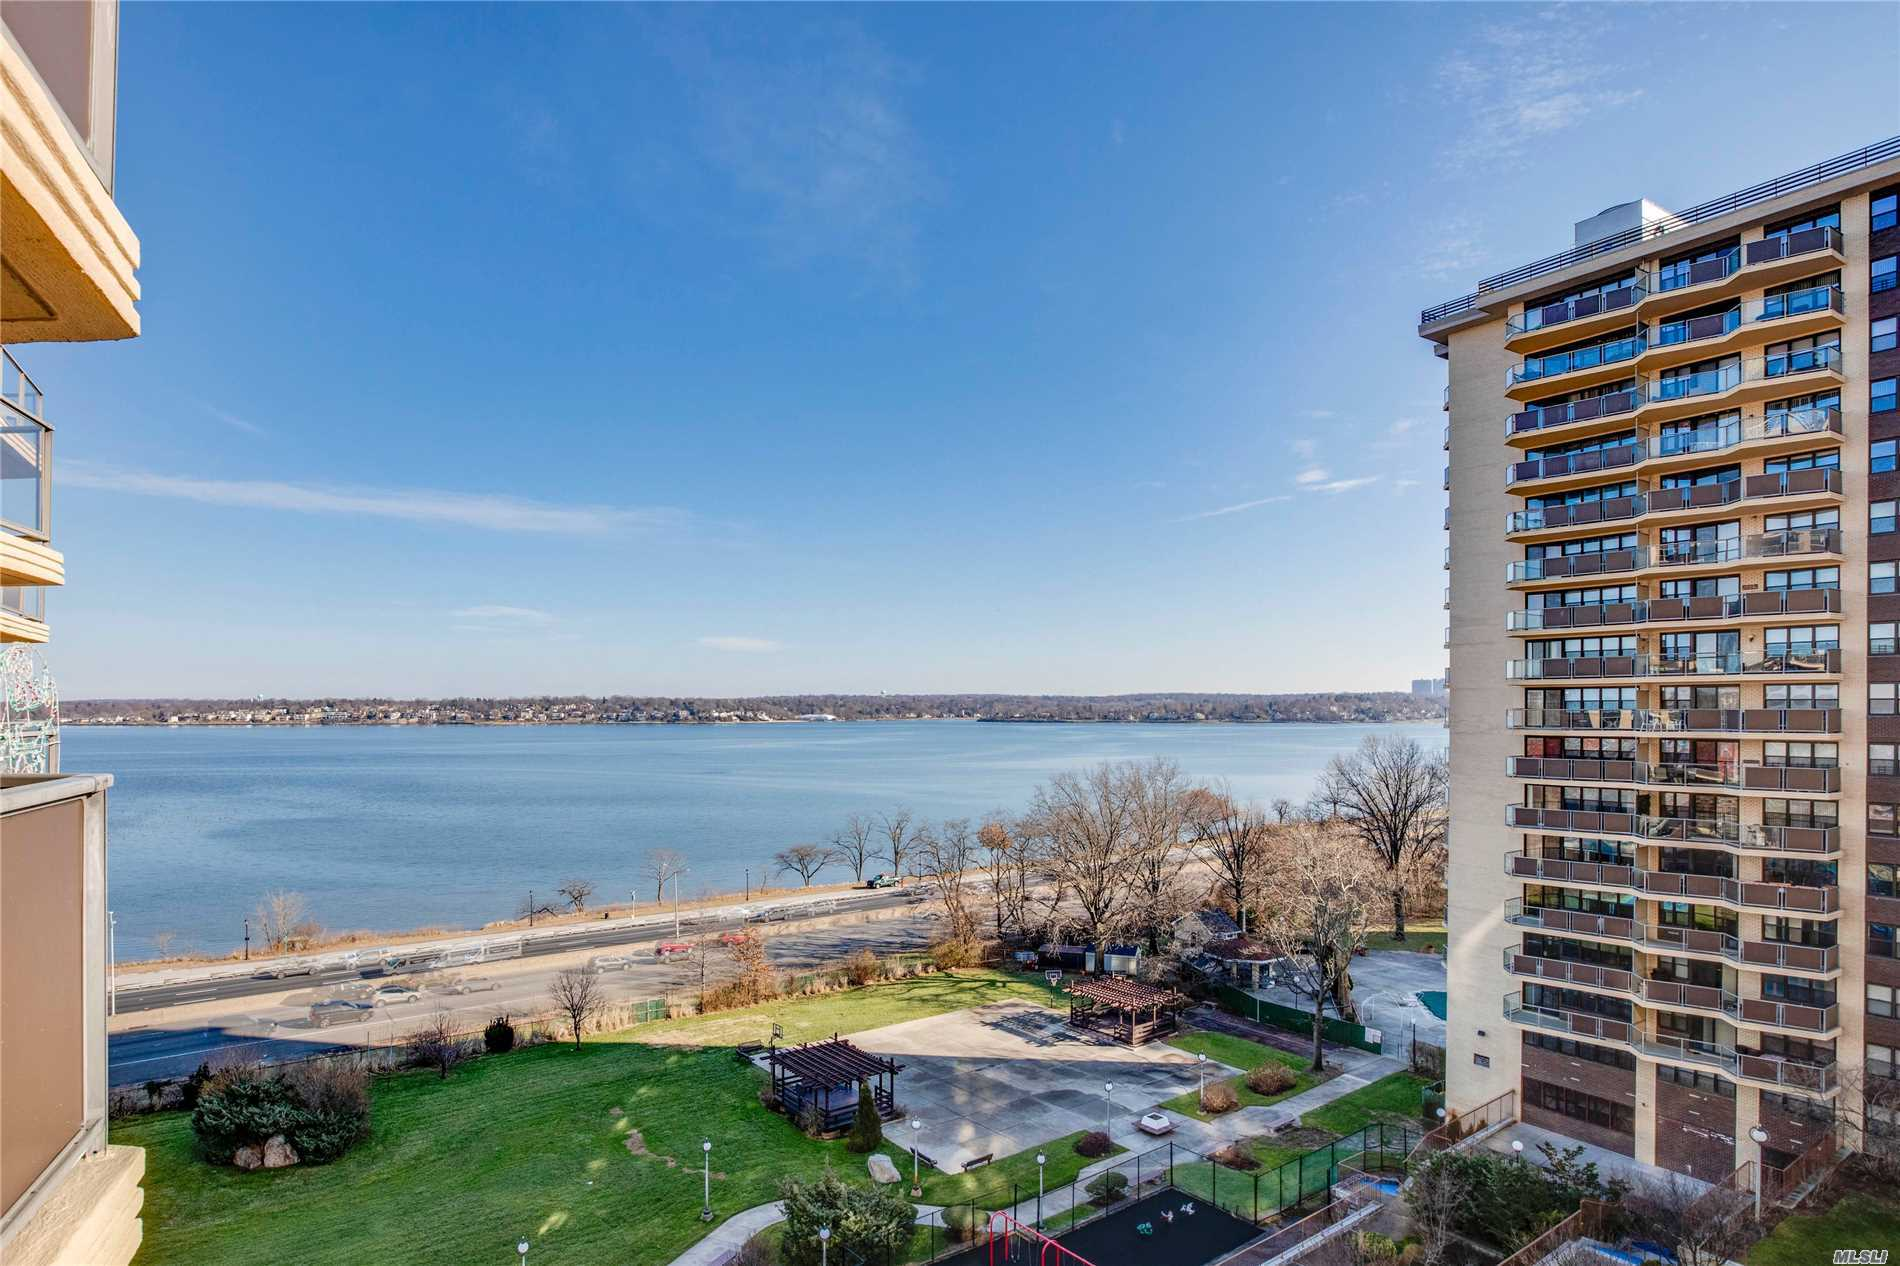 Bayside One Bedroom Co-Op In The Desirable Dog Friendly Americana At The Towers Of Waters Edge. Prime Location Offering Resort Style Living With 24 Hour Doorman, Health Club, Outdoor Heated Pool, Tennis, On-Site Convenience Store, /Cafe, Dry Cleaners And Salon. Maintenance $993.34 Electric $90.75 Amervserv $100, Outdoor Pkg $102. Indoor Pkg $154.